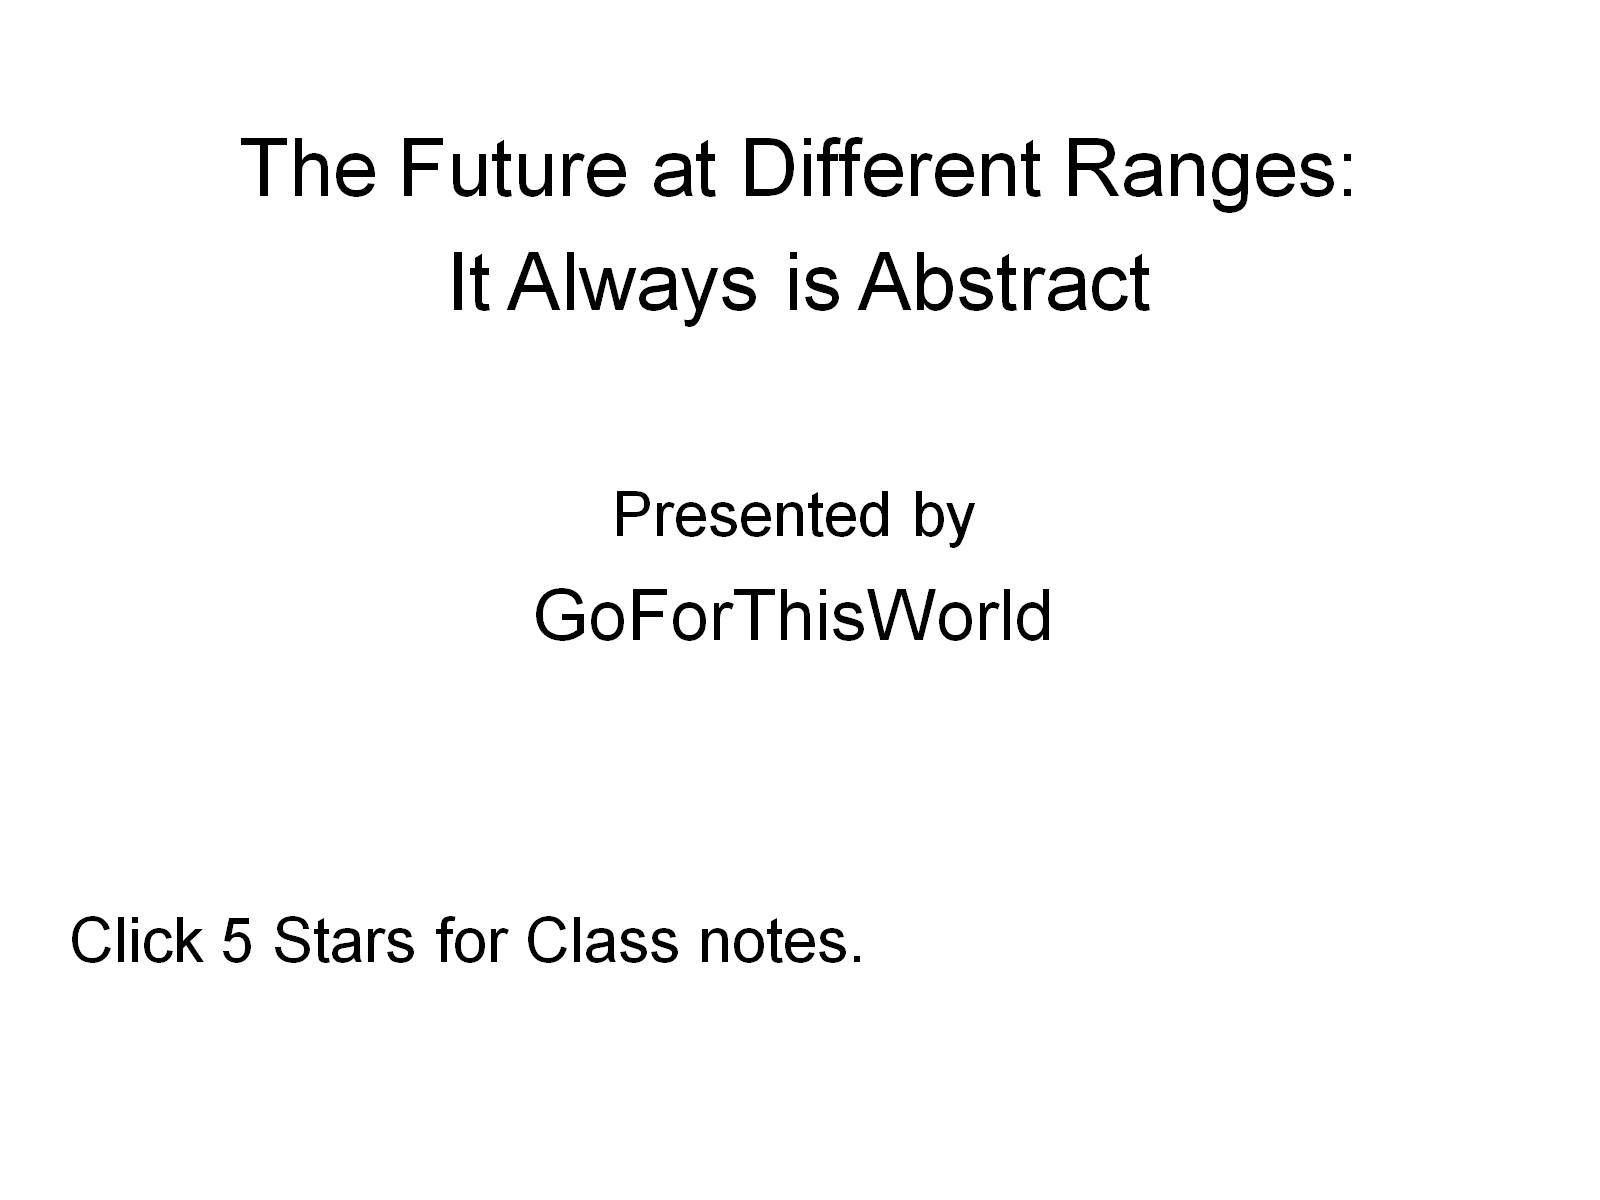 The Future:  It always is abstract